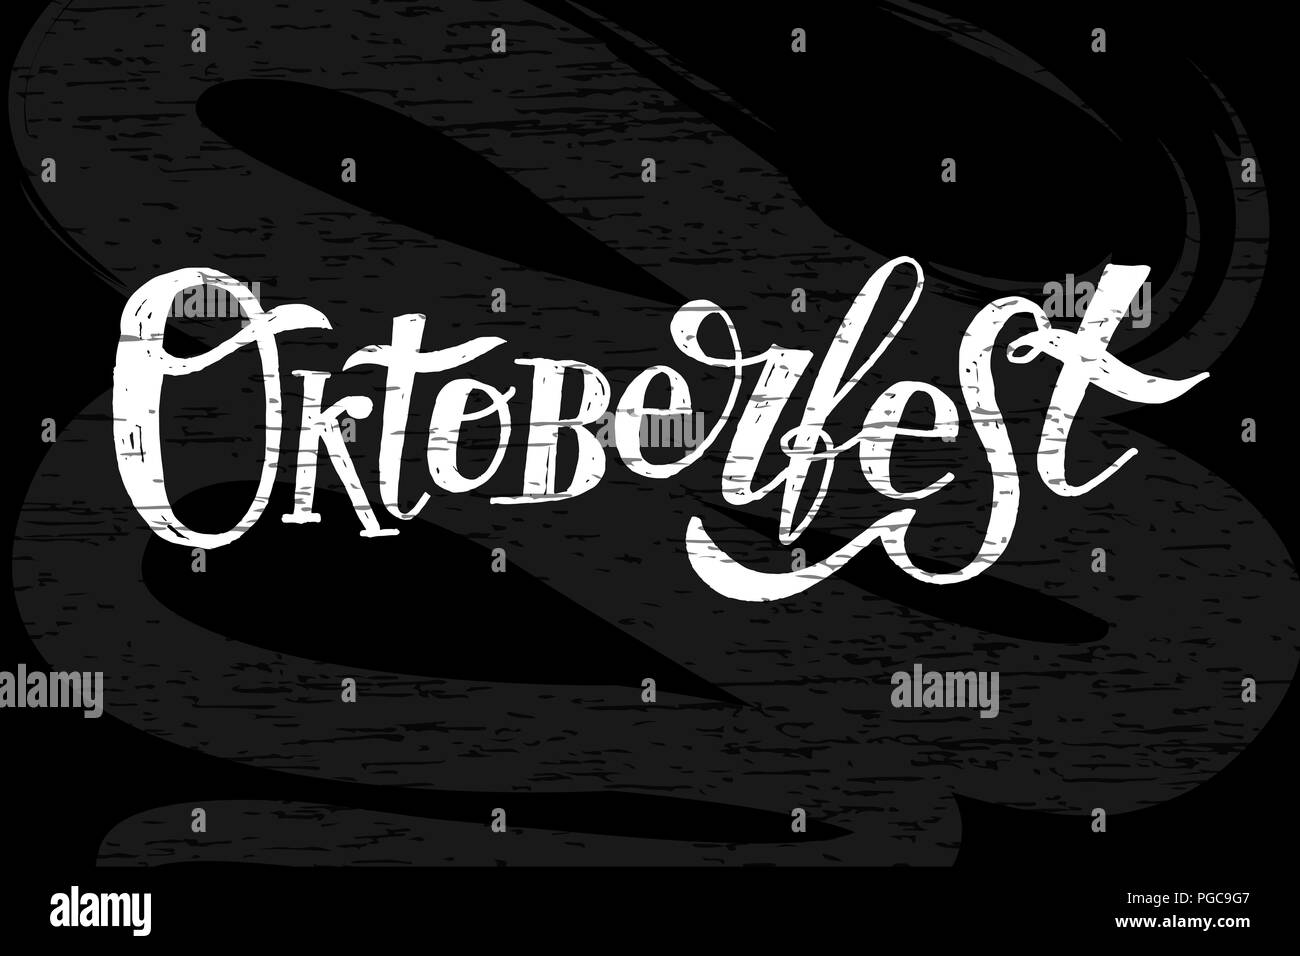 Oktoberfest lettering Calligraphy Brush Text Holiday Illustration Chalkboard - Stock Image